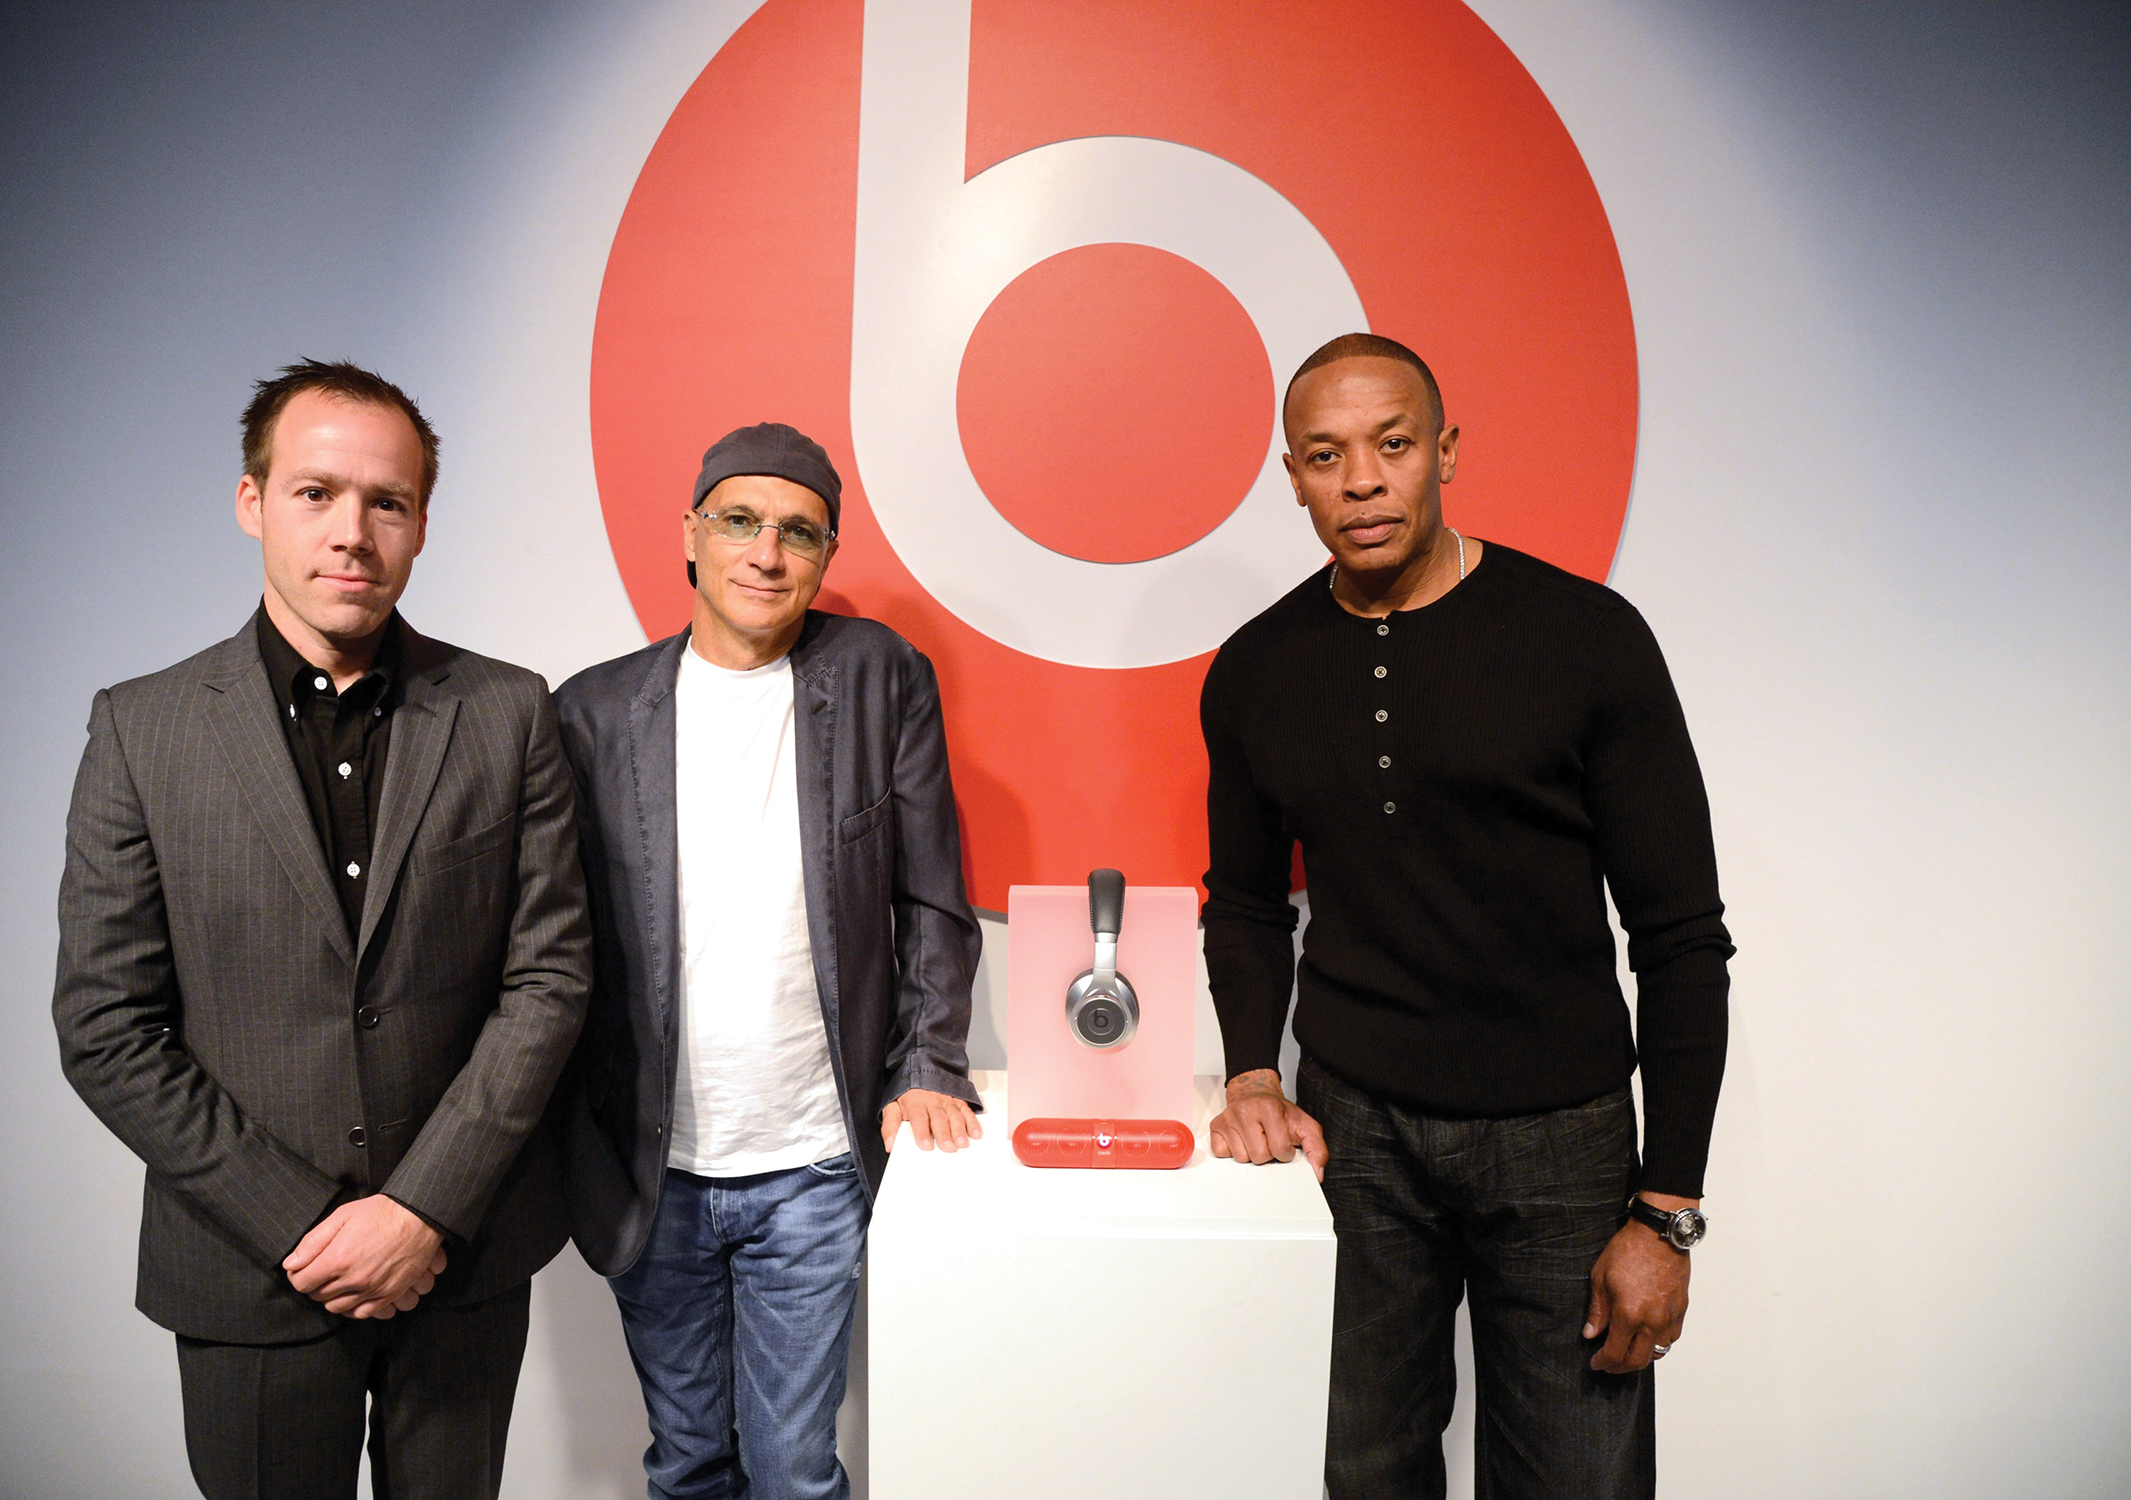 Company president Luke Wood '91 joins Beats Electronics co-founders Jimmy Iovine and Dr. Dre displaying their must-have headphones.